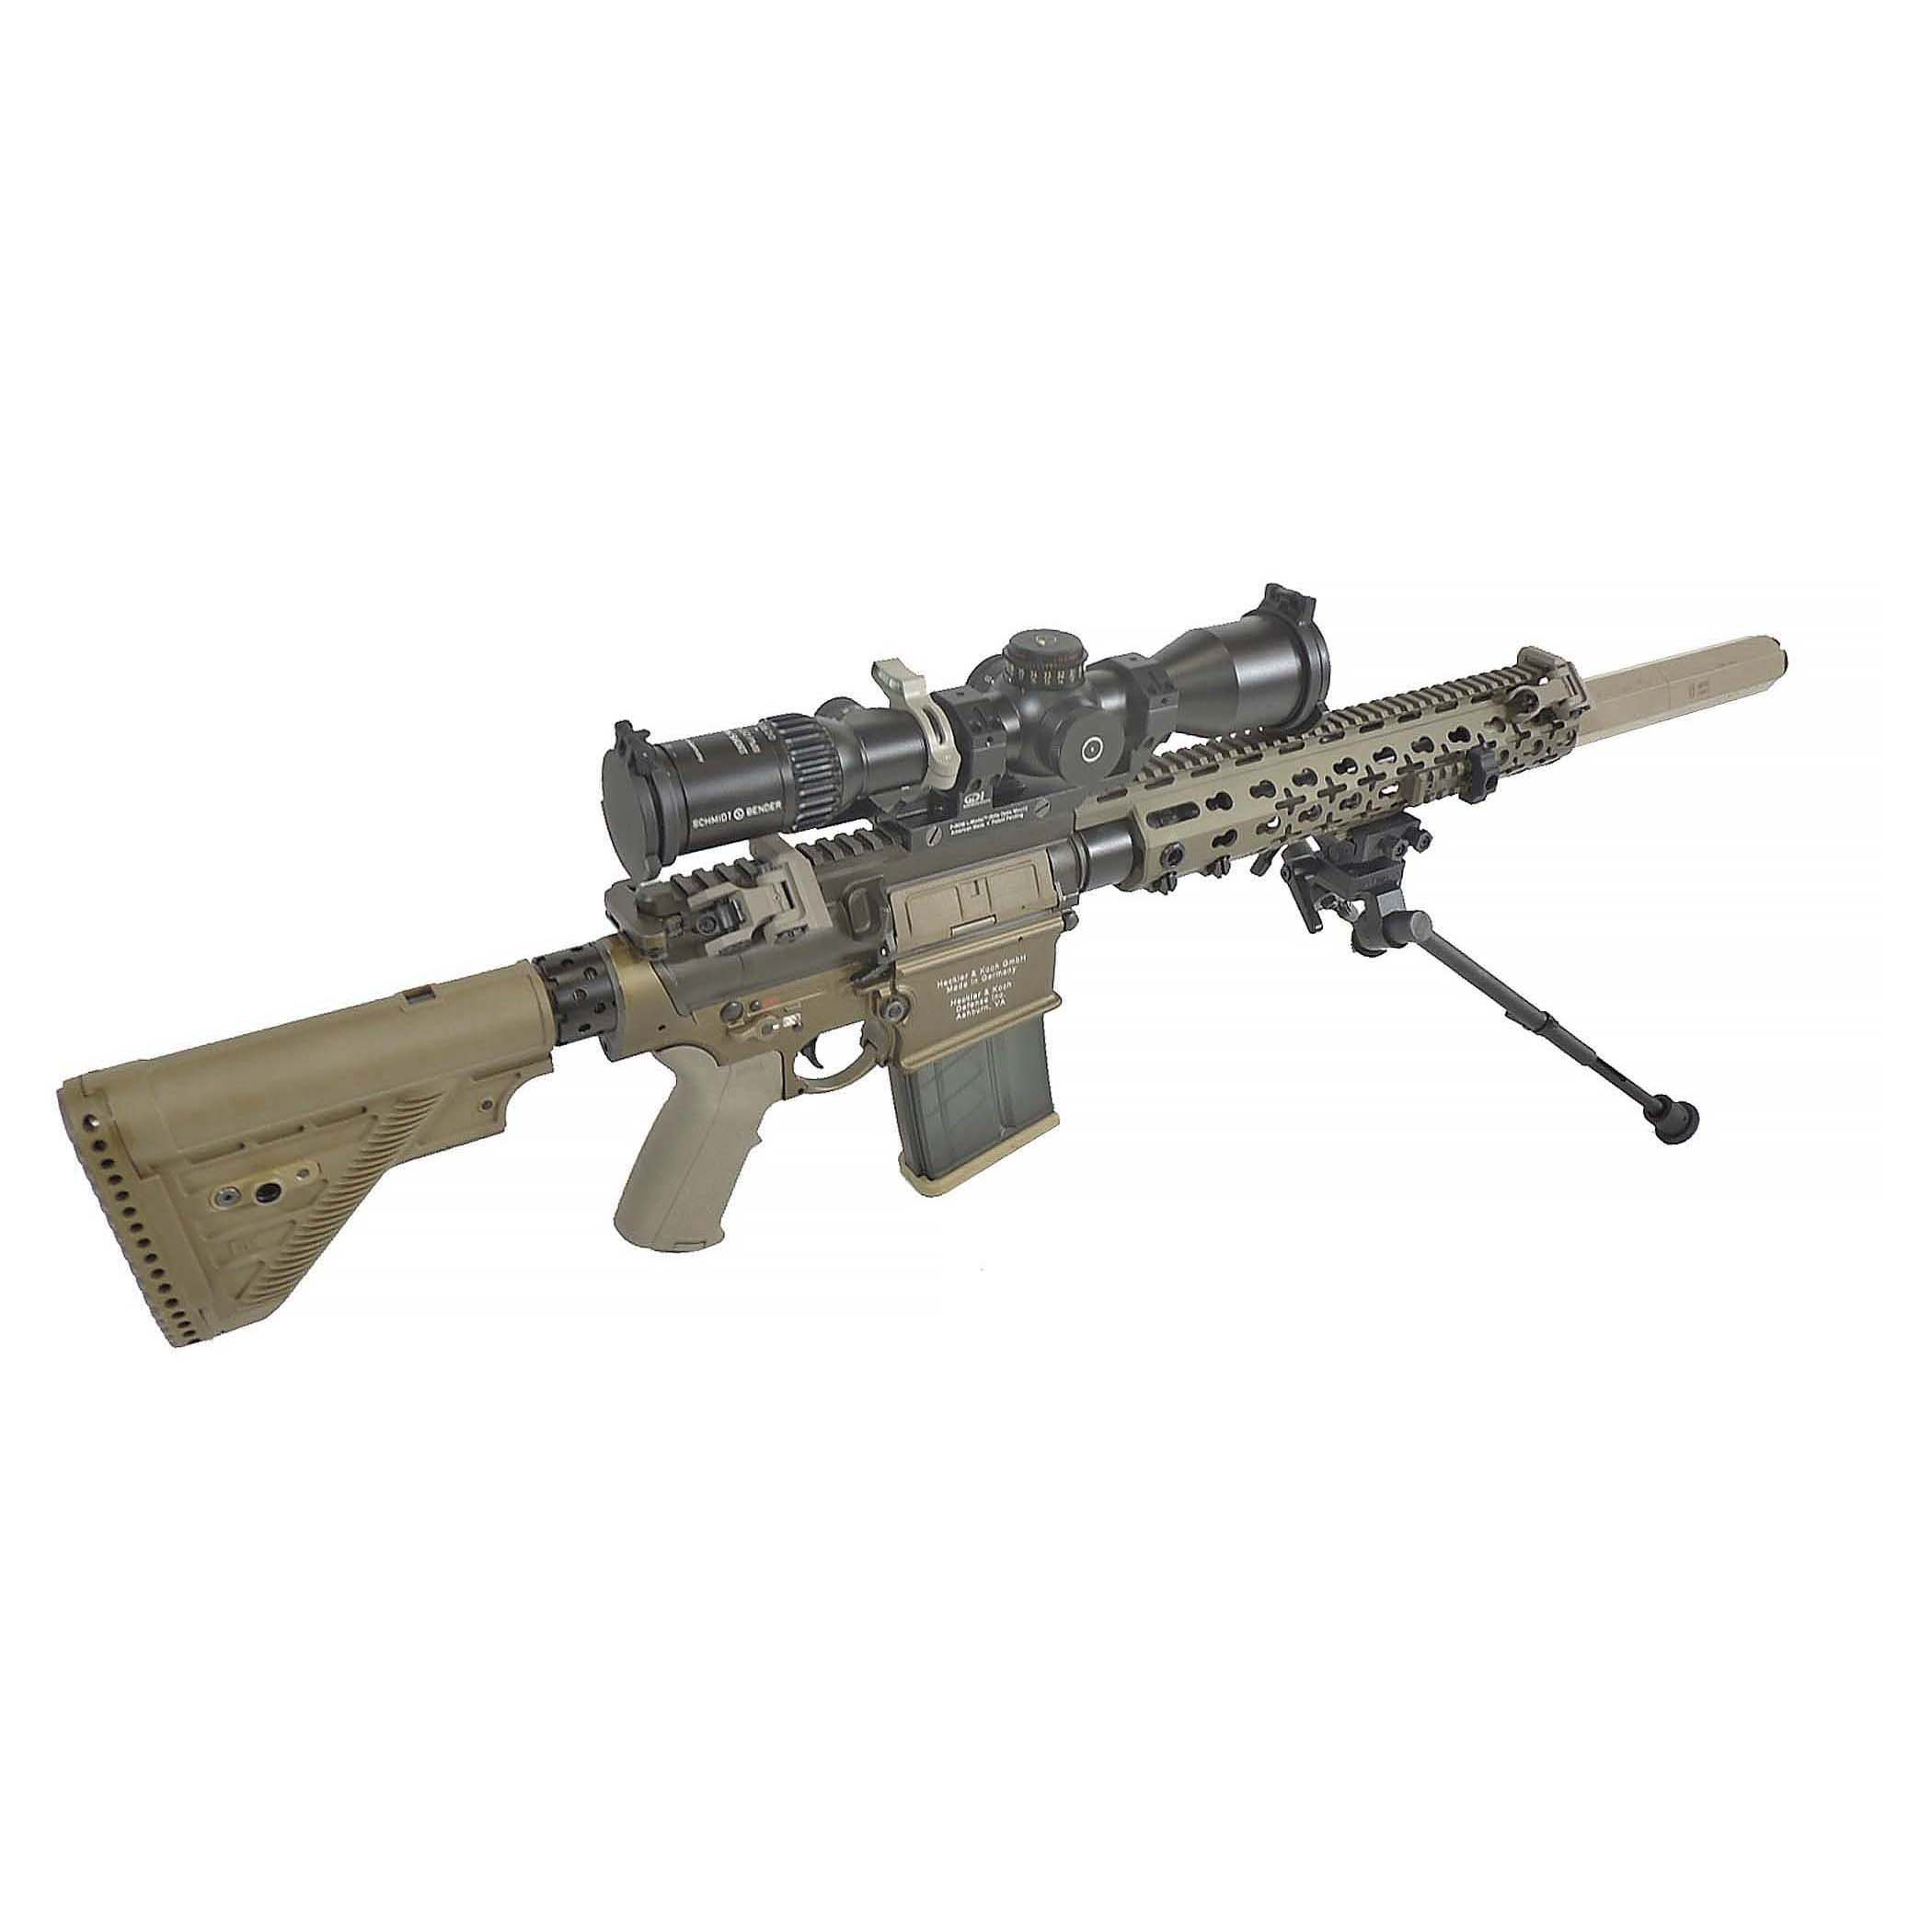 H&K confirms: This is the Army's new and improved sniper rifle